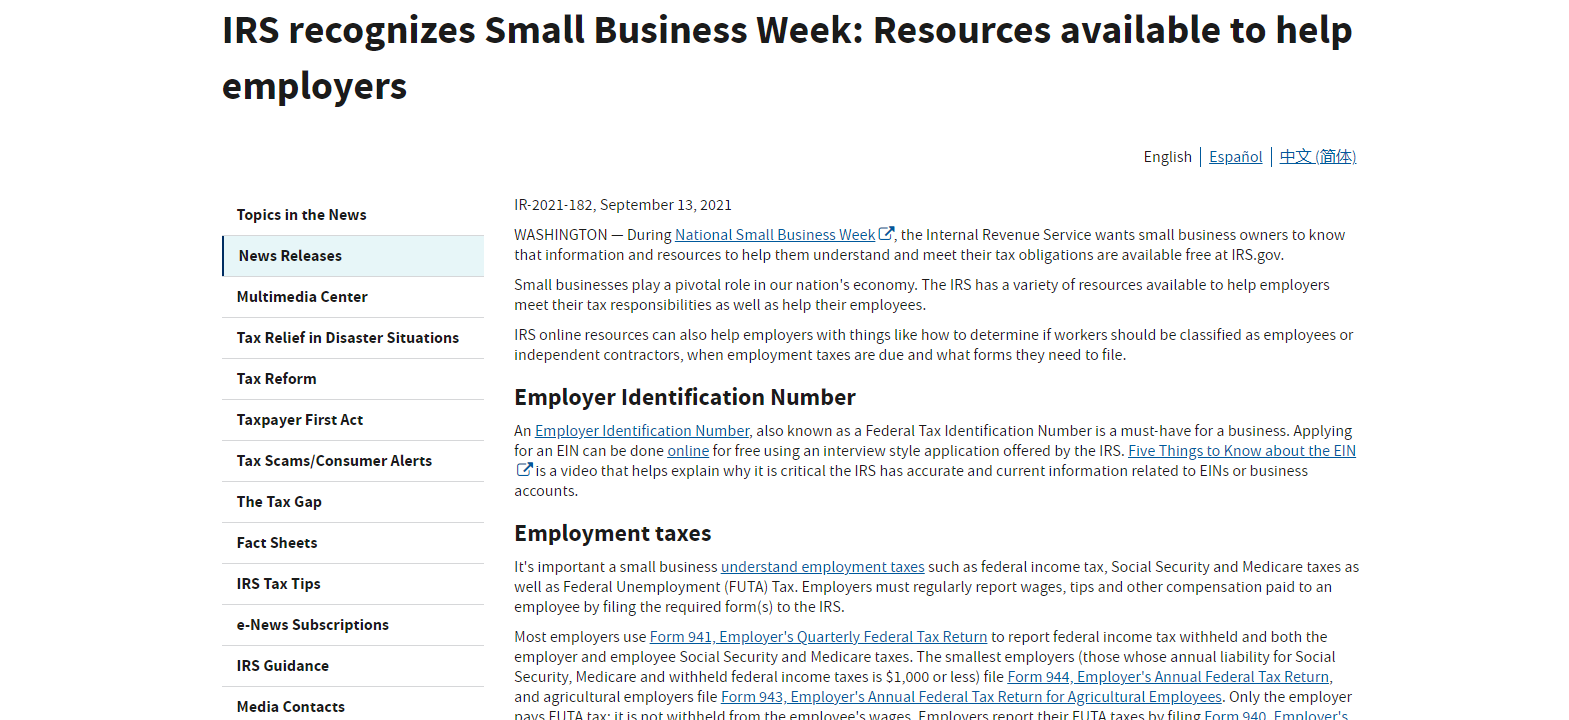 IRS: Resources Available to Help Employers